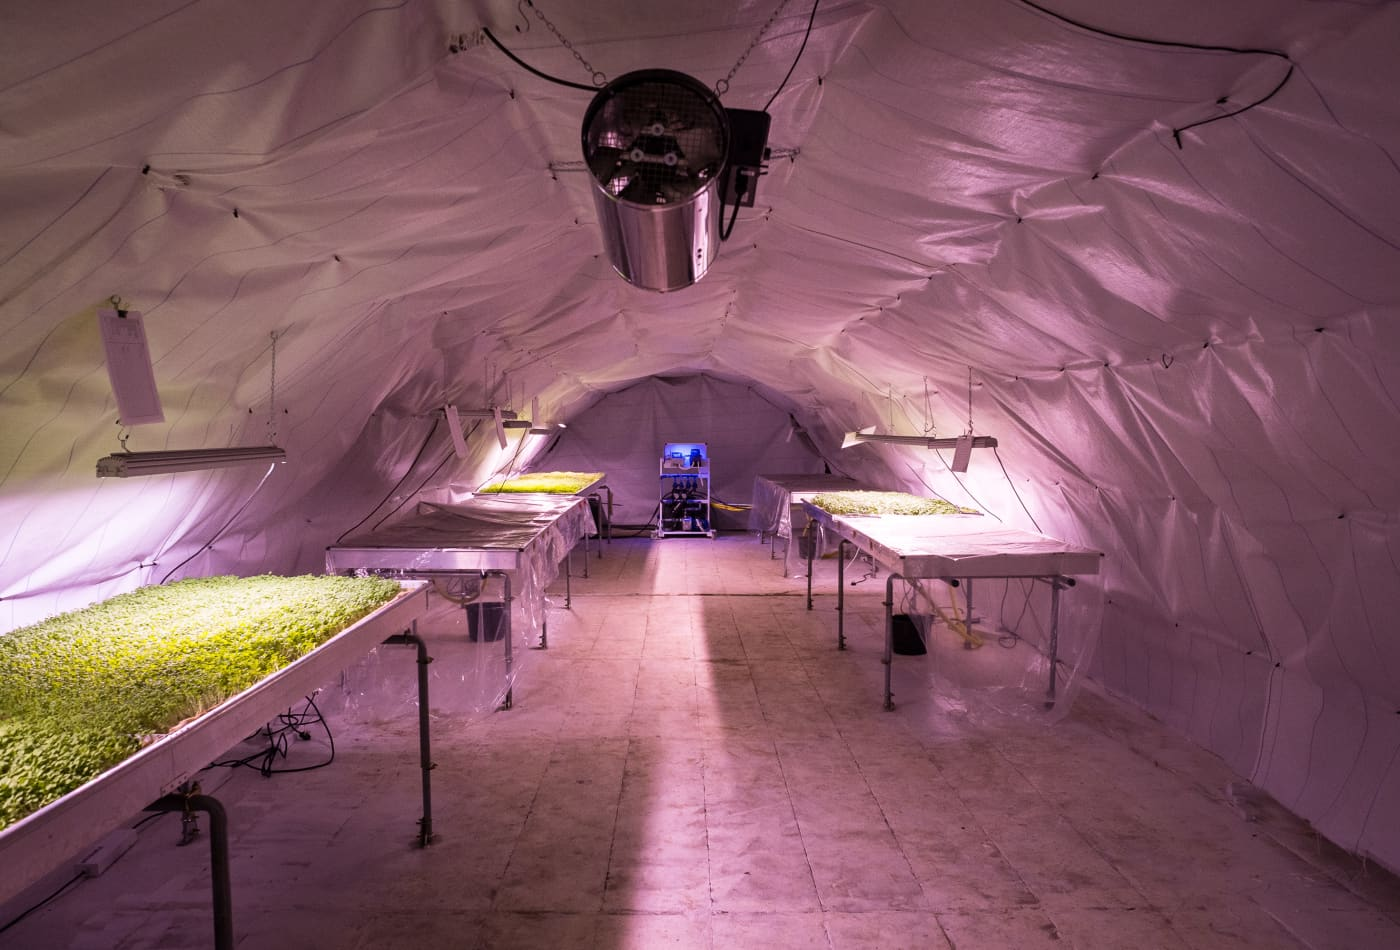 In London, there's an underground farm growing salad without soil